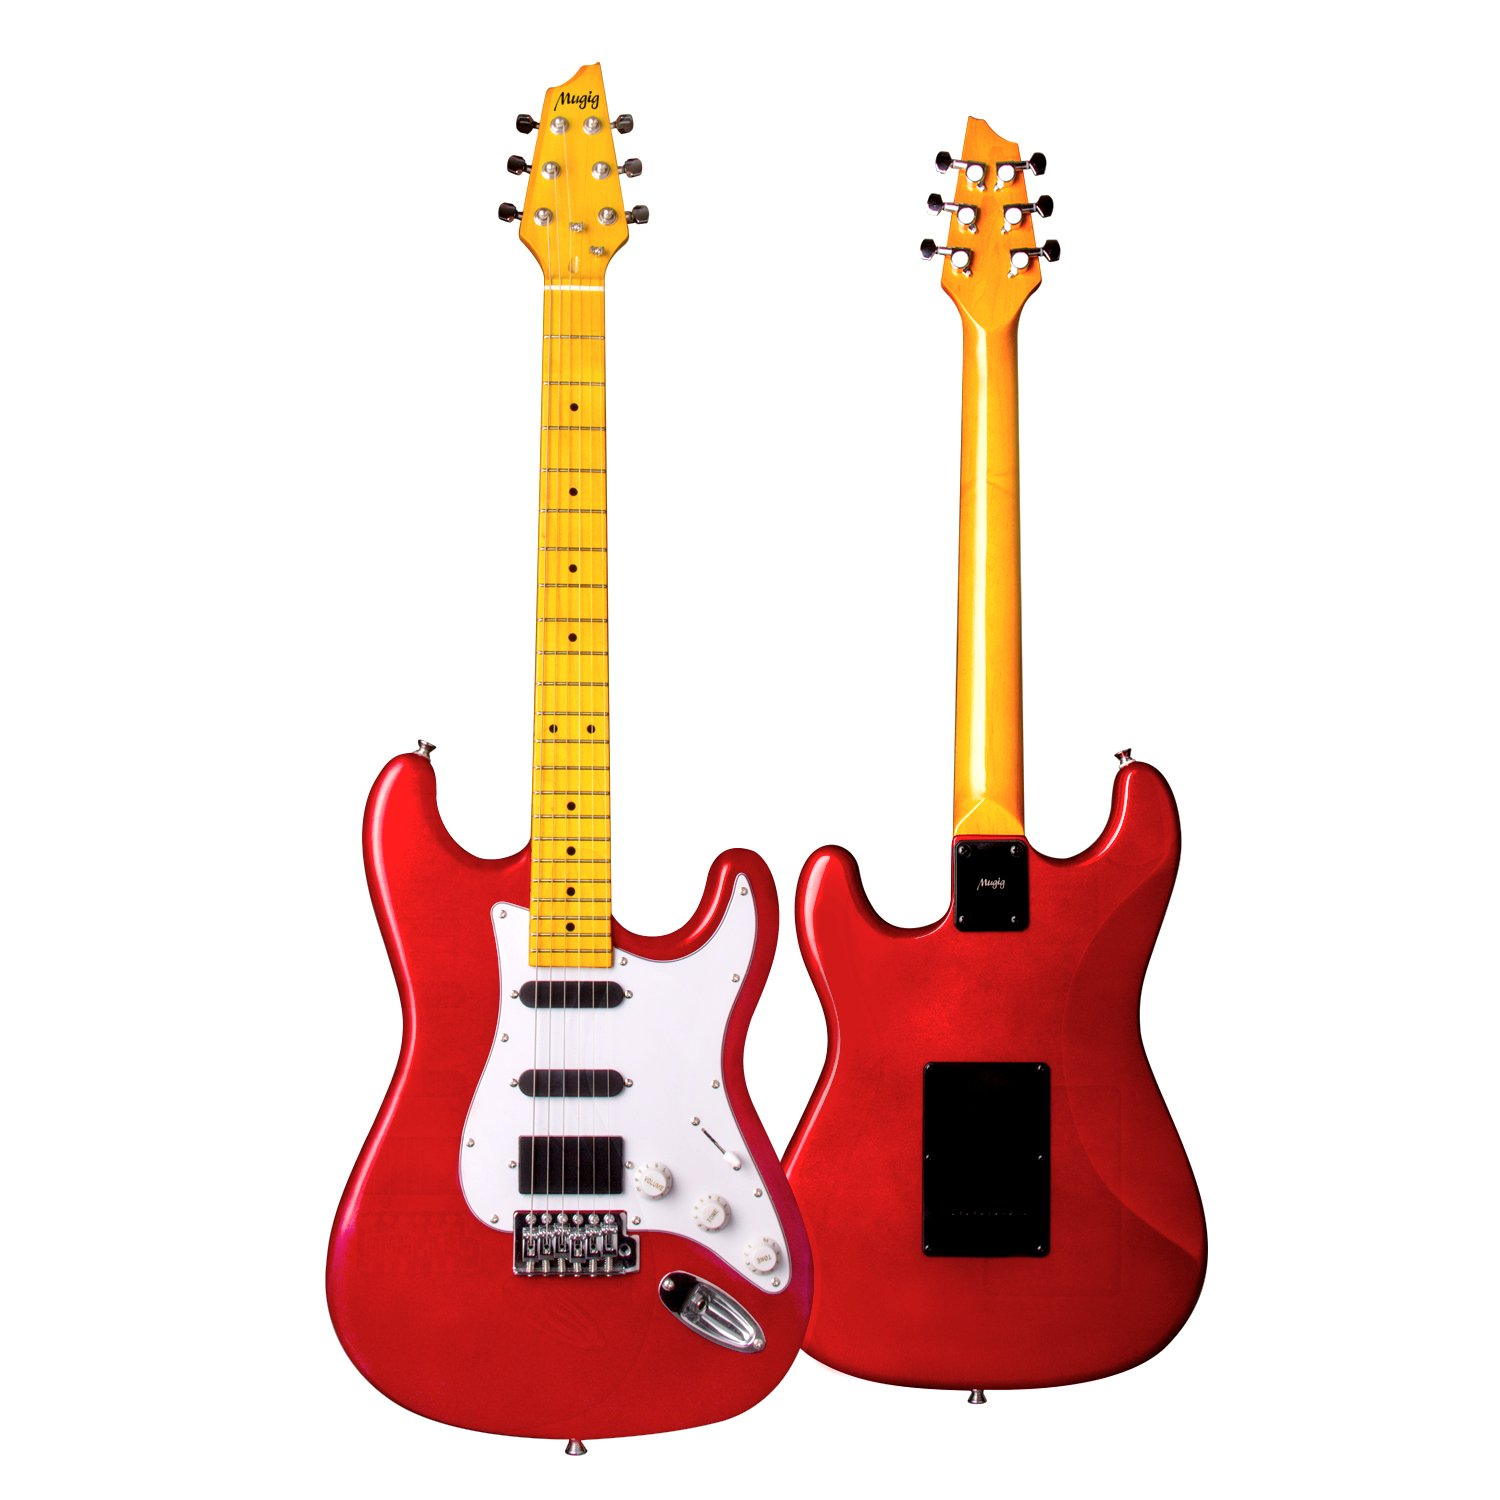 Mugig Electric Guitar, 39 Inches, ST Type Electric Guitar, with One 10ft Guitar Cable, Two Single-coil, and One Humbucker Pickups, Glossy Surface Paint, Poplar Body and Maple Fingerboard - Flaming Red by Mugig